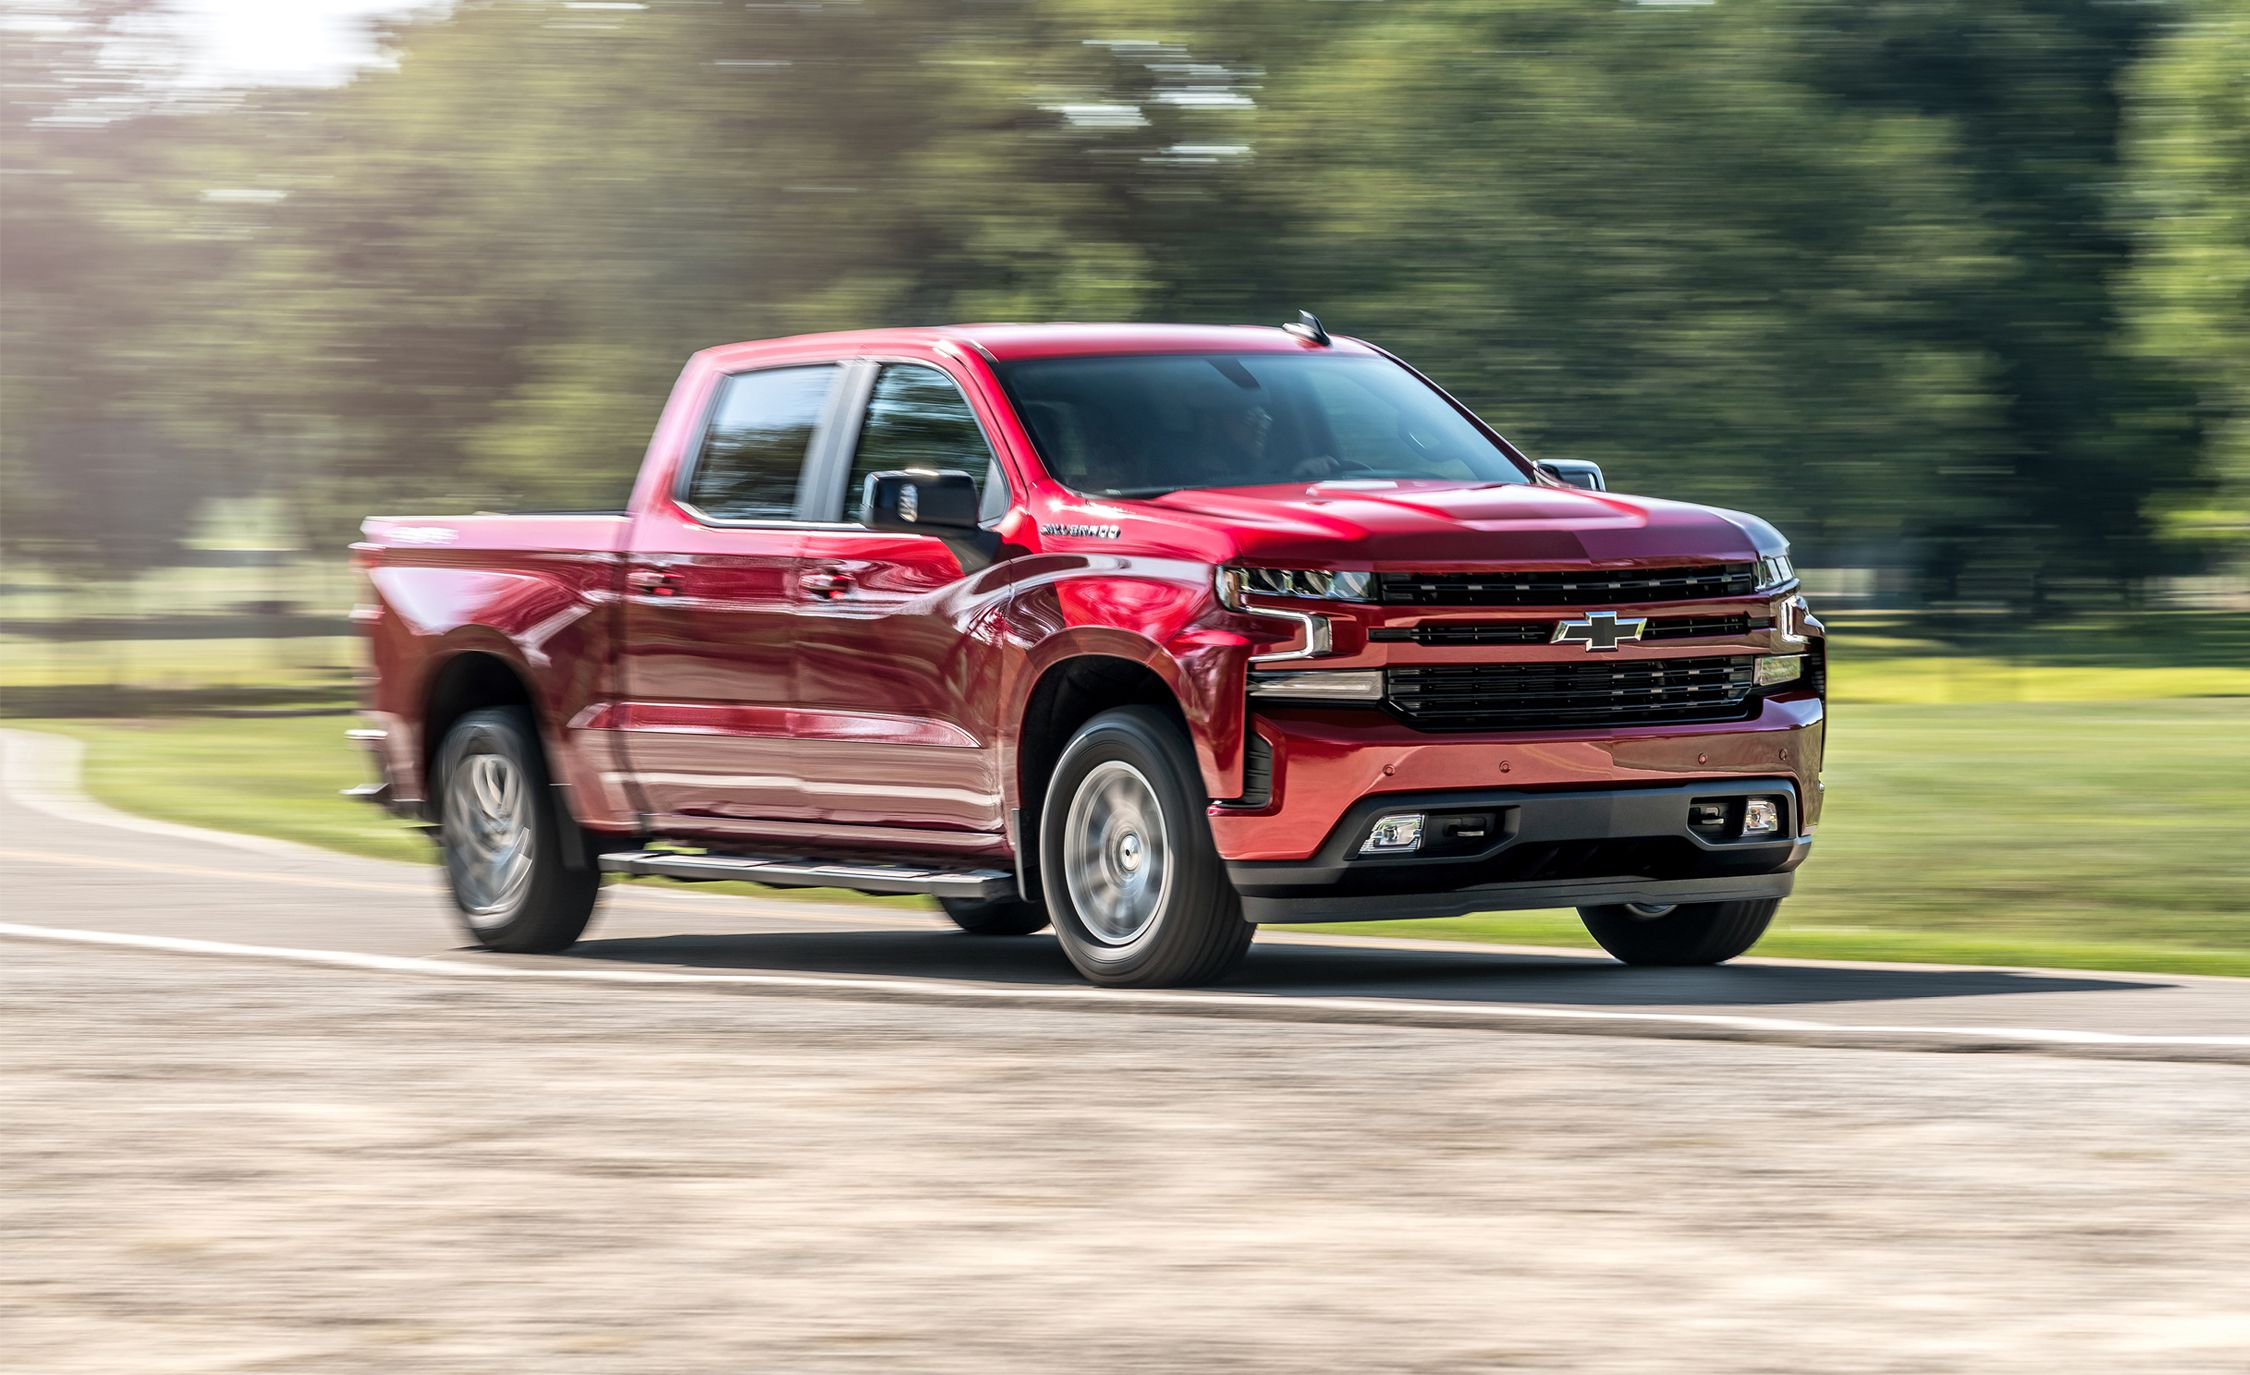 59 The Best 2019 Silverado 1500 Style